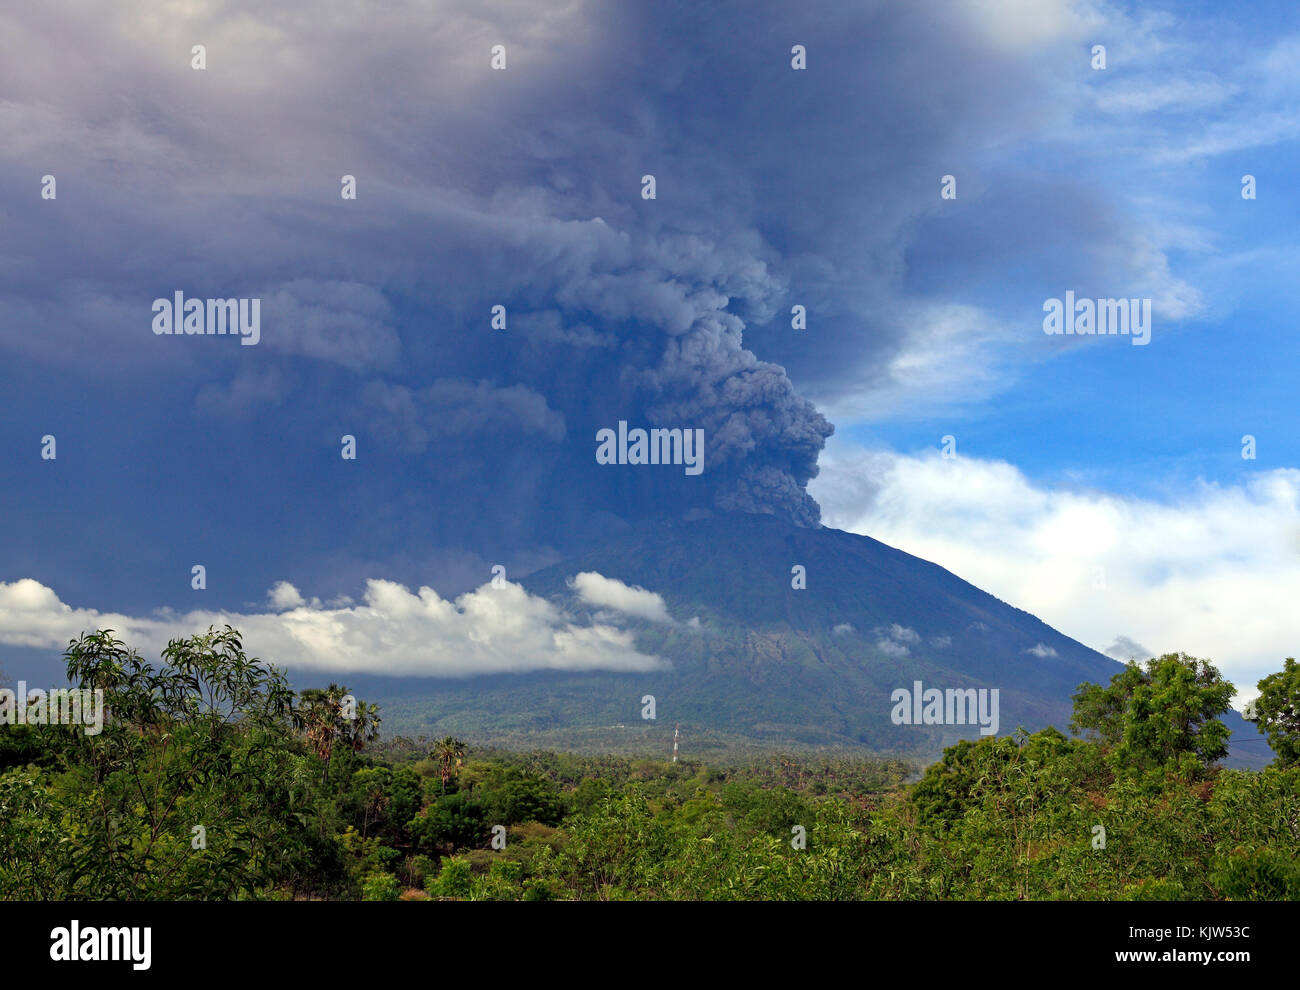 mt-agung-volcano-eruption-morning-of-26-november-2017-taken-from-tulamben-KJW53C.jpg